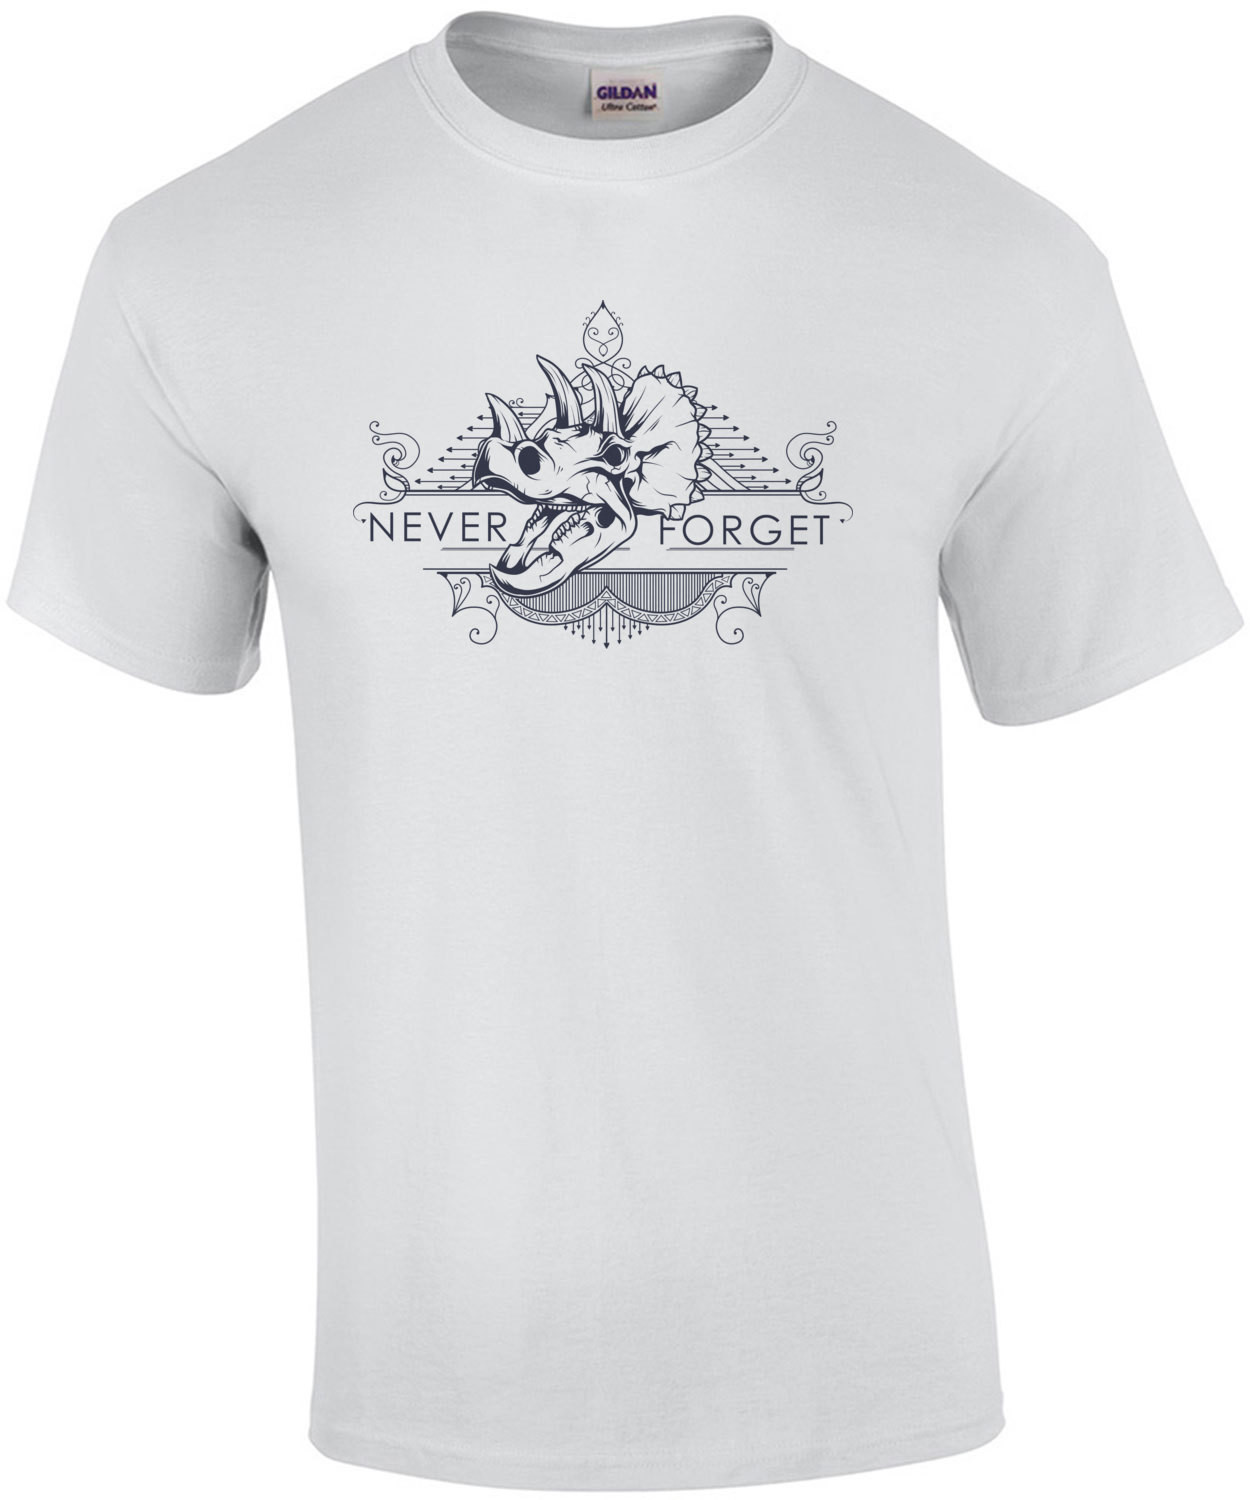 Never Forget Triceratops Dinosaur T-Shirt